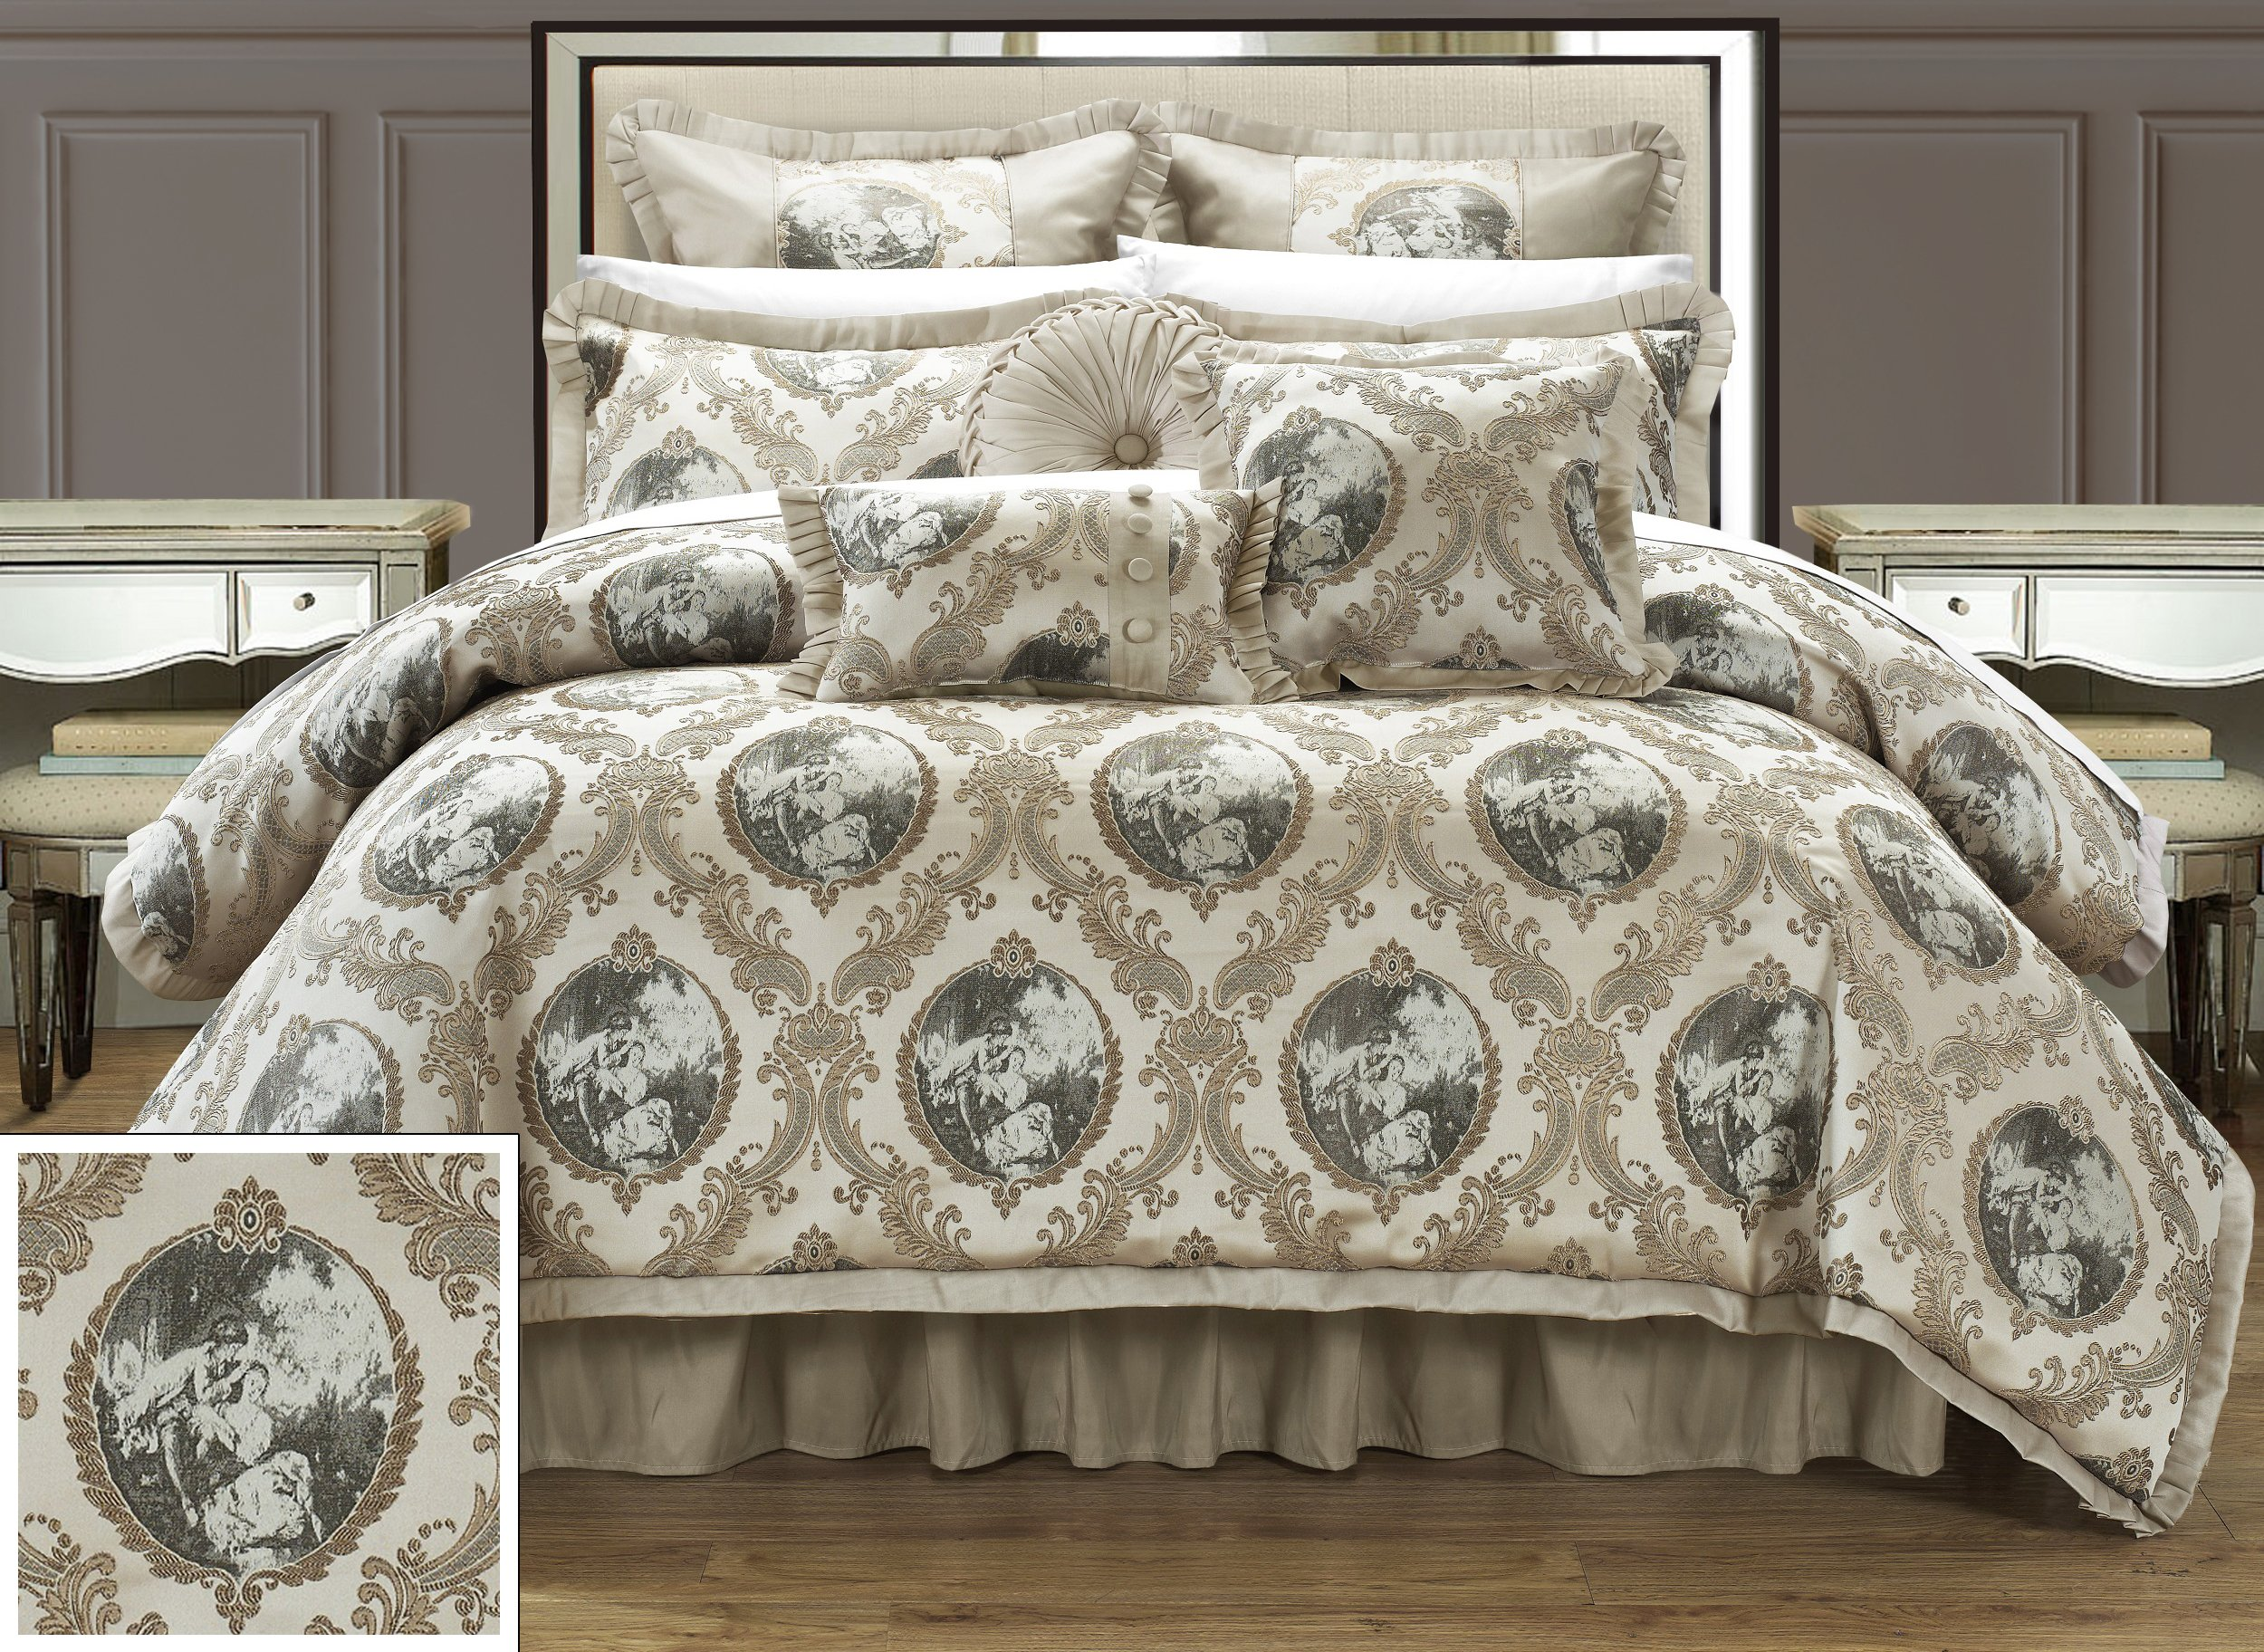 """Chic Home 9 Piece Romeo and Juliet Decorator Upholstery Comforter Set with Pillows Ensemble, King, Beige - 1pc Comforter with Faux silk pleated flange: 110x96"""" , 2pc Pillow Sham: 20x36+2"""" , 2pc Euro Sham Faux silk: 26x26+1.5 inch Flange, 1 Bed skirt pleated faux silk: 78x80+15"""" , 1pc Cushion: 18x18"""" , 1pc Rectangle Pillow: 12x18"""" , 1 Round Pillow: 16"""" Oversized Overfilled Elegant decorative pillows highlight the essence of this comforter set - comforter-sets, bedroom-sheets-comforters, bedroom - A1MBk nbV1L -"""